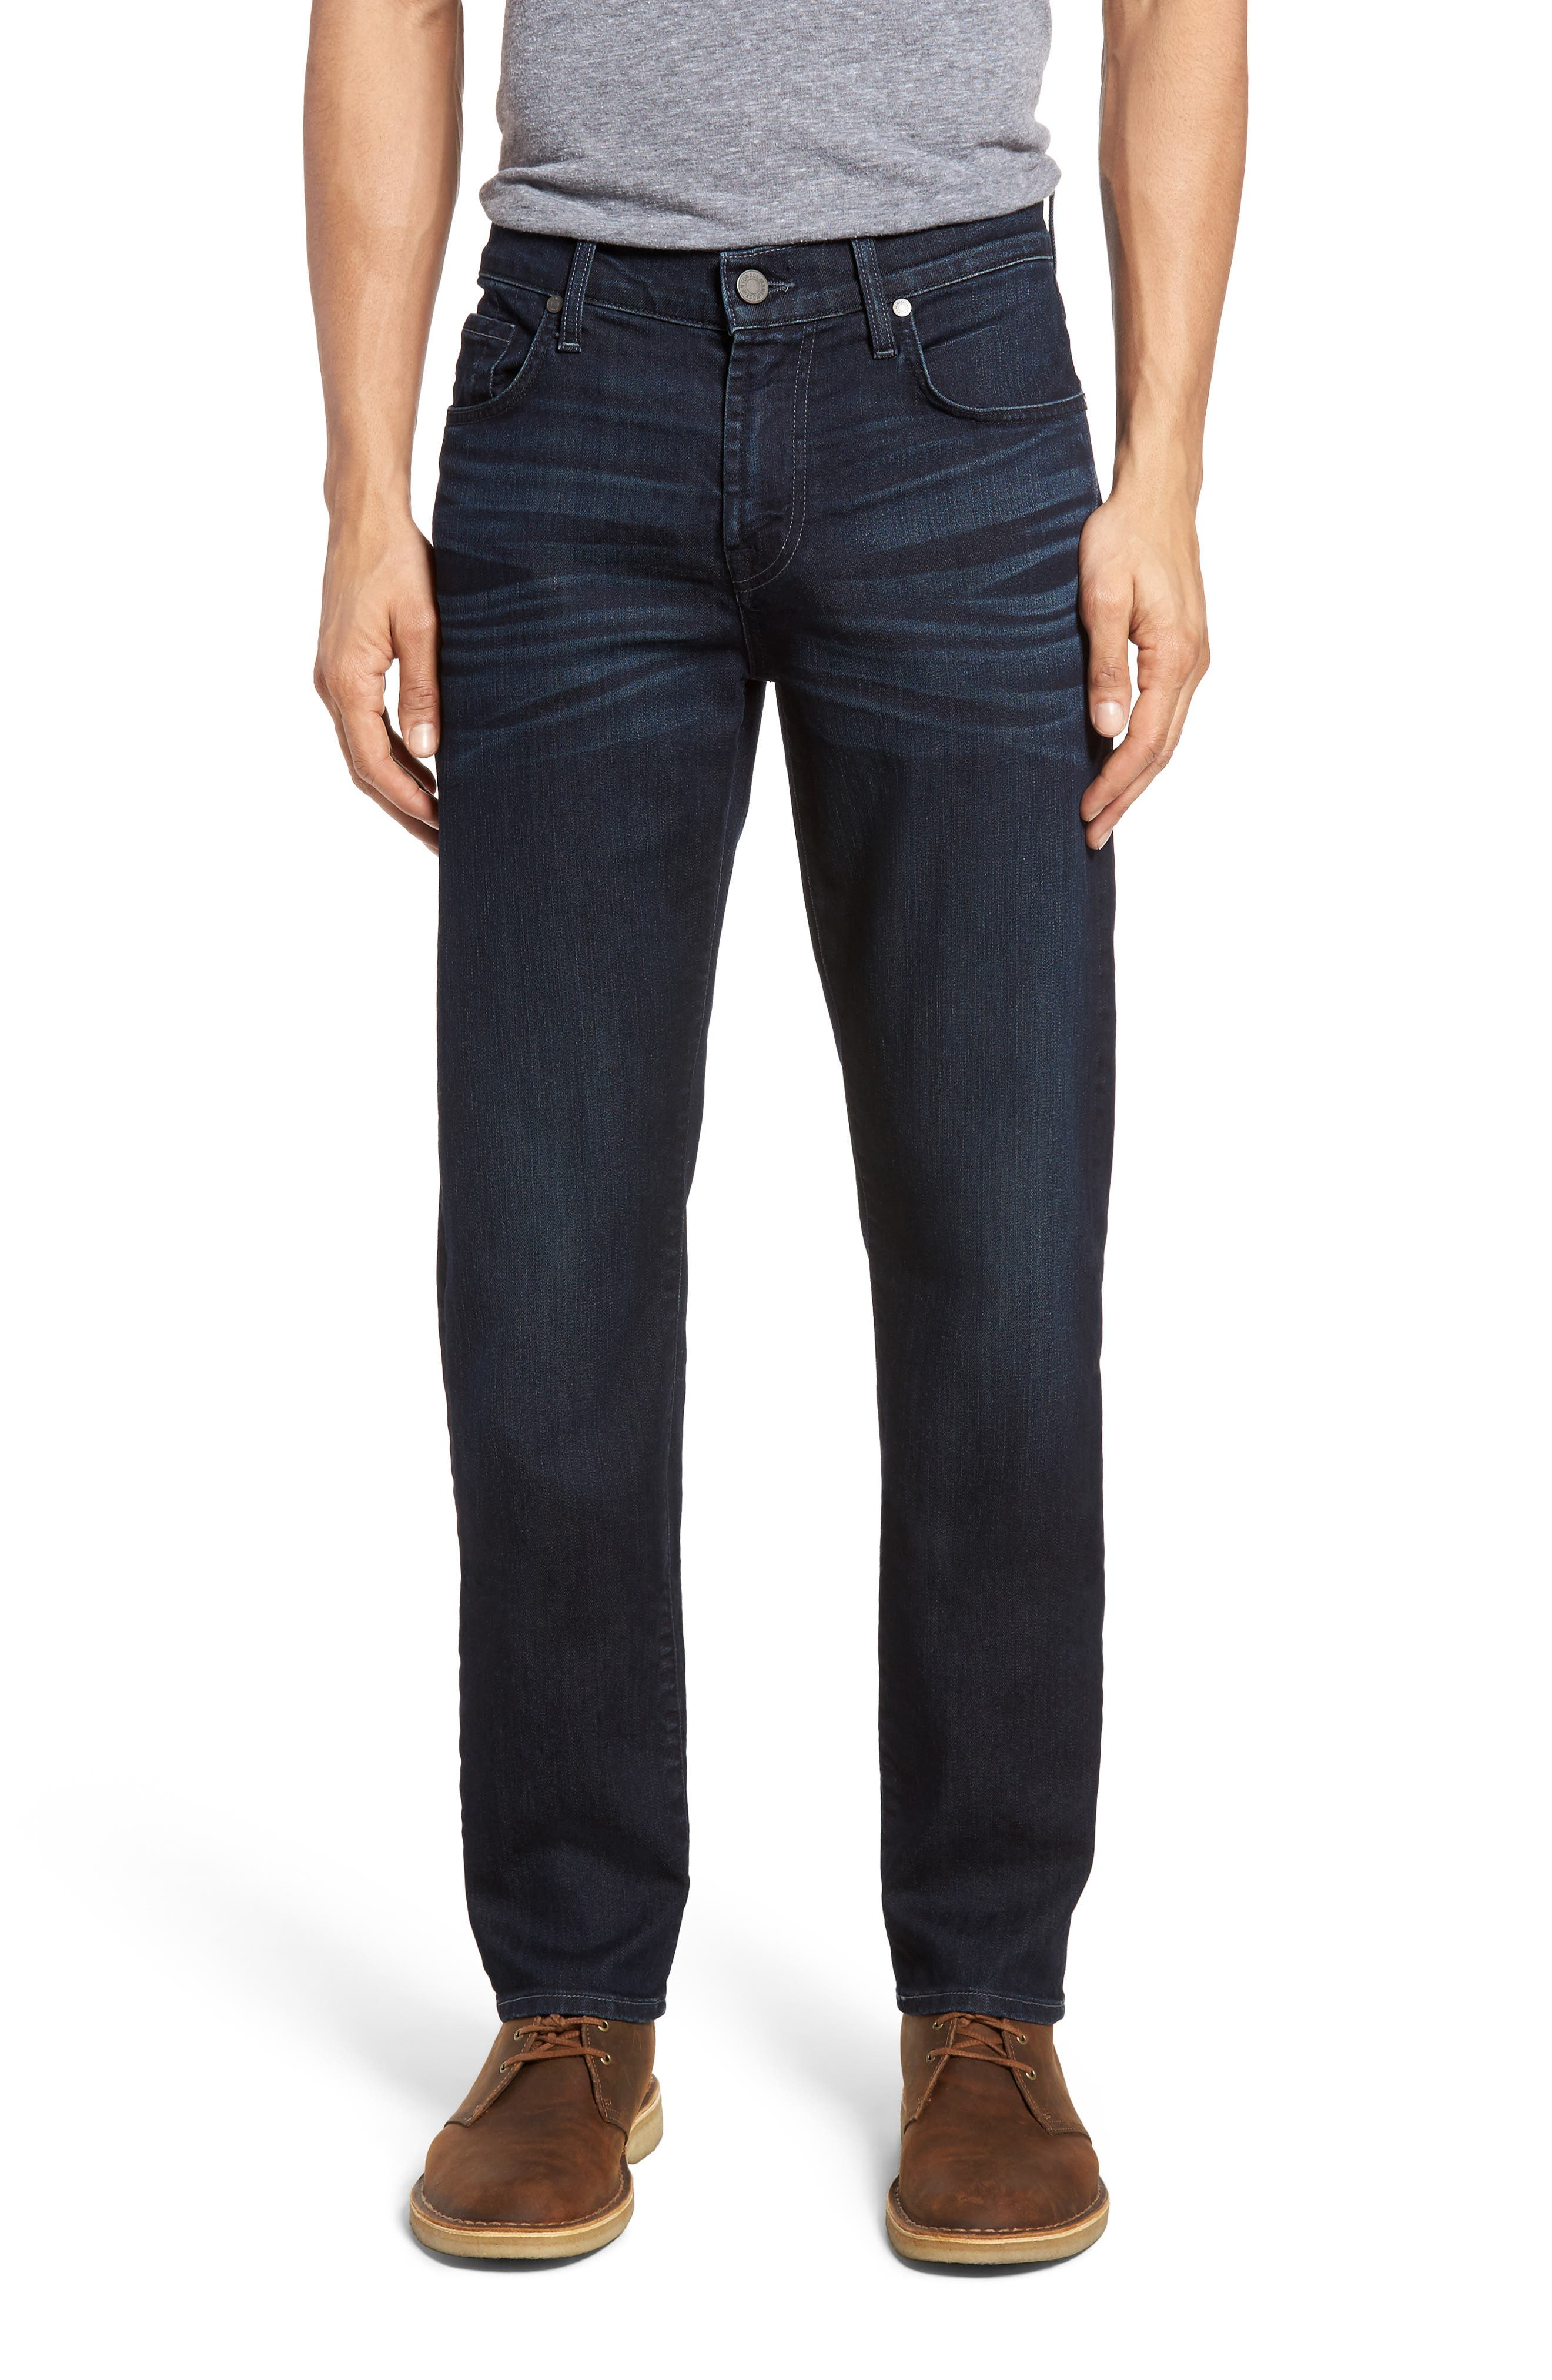 Slimmy AirWeft Slim Fit Jeans,                             Main thumbnail 1, color,                             Perennial